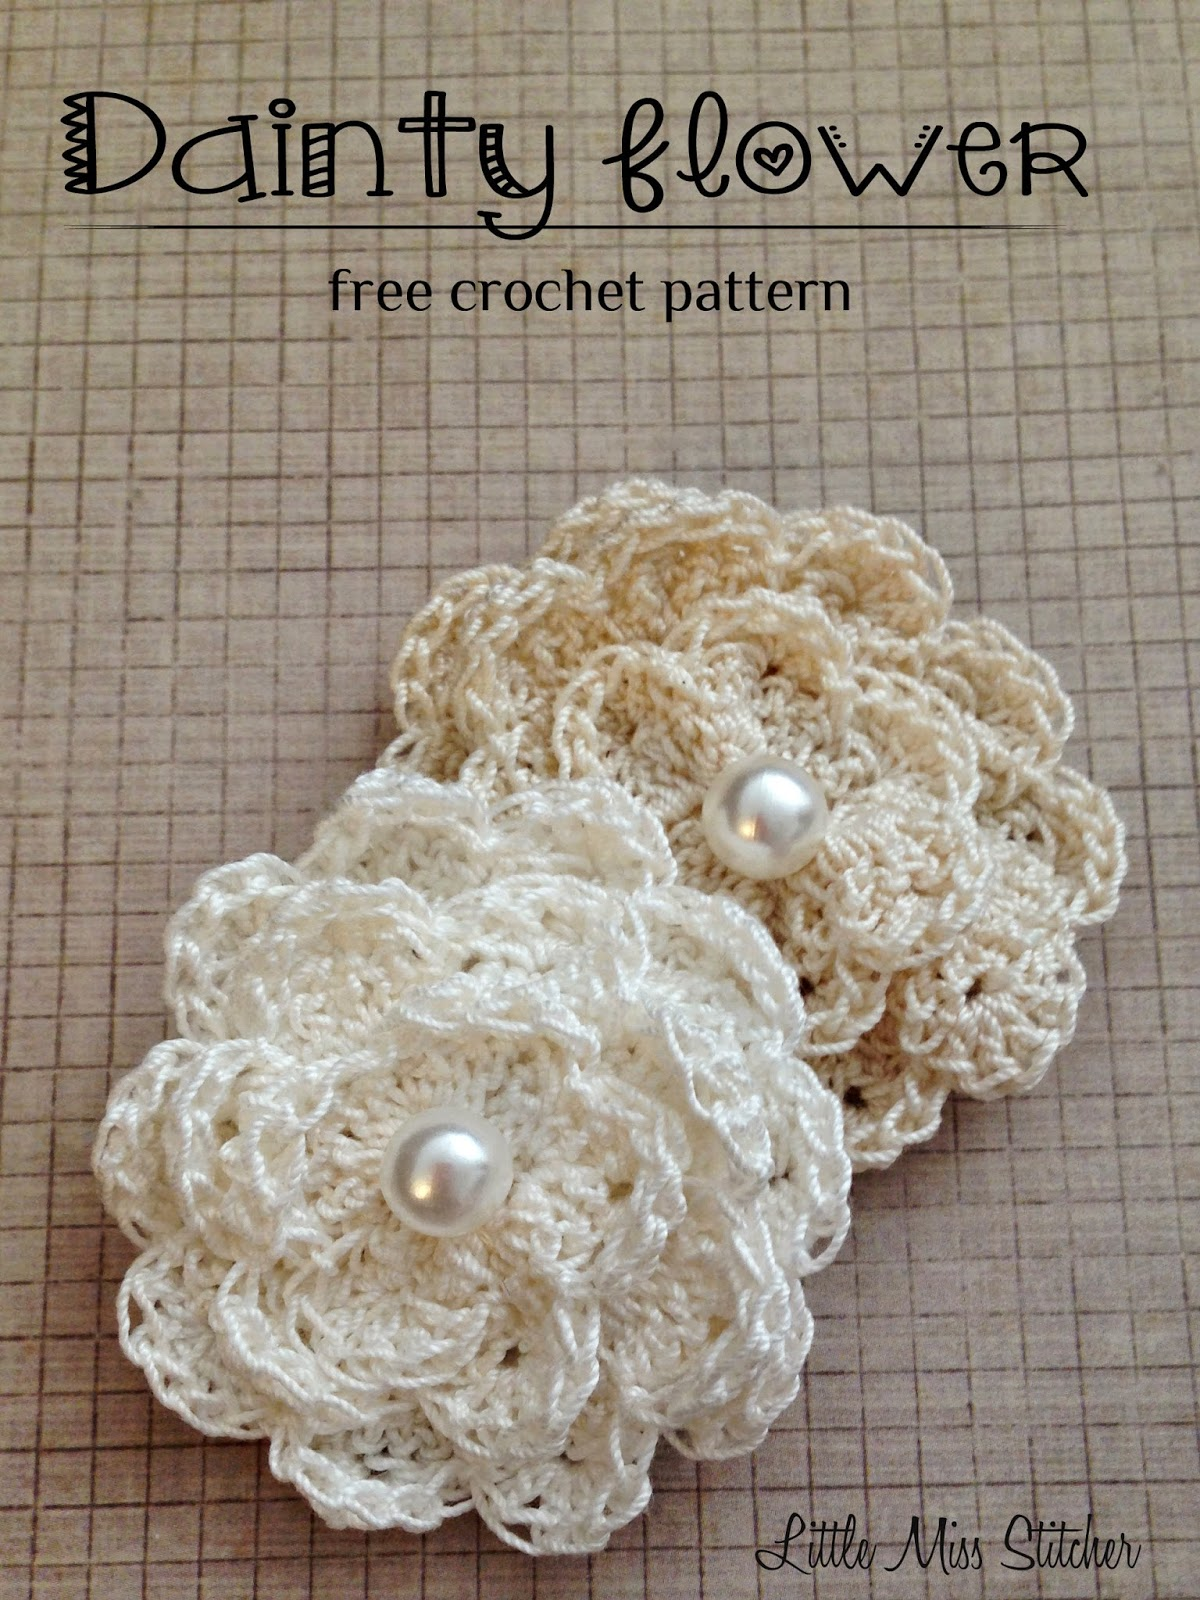 Free Crochet Patterns Using Size 3 Thread : Little Miss Stitcher: Dainty Crochet Flower Free Pattern